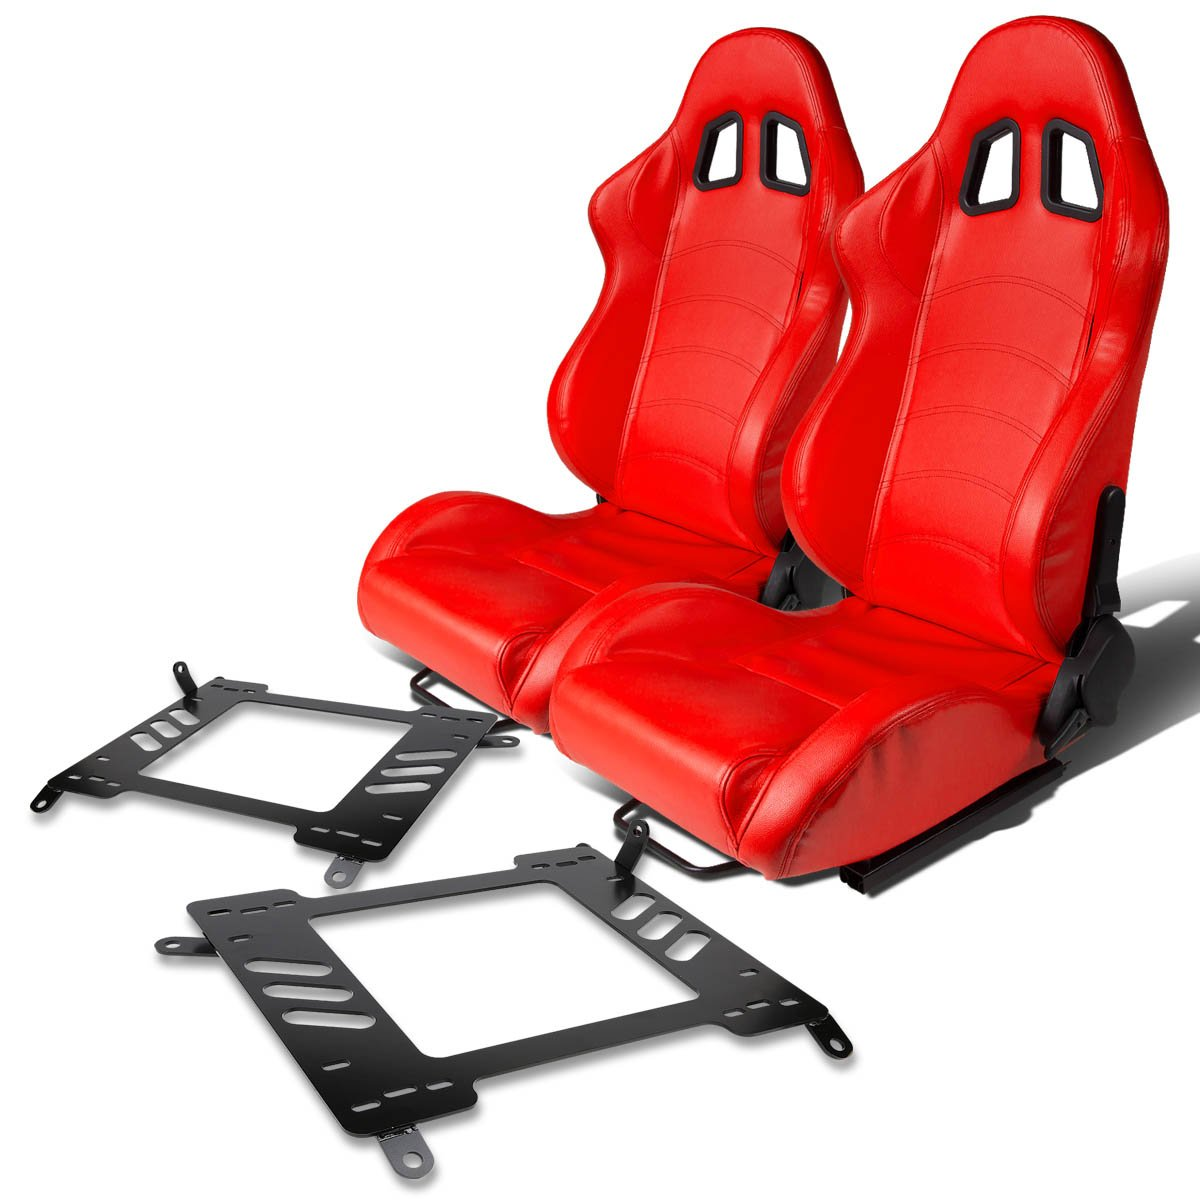 Pair of RST1PVCRD Racing Seats+Mounting Bracket for 00-05 Celica